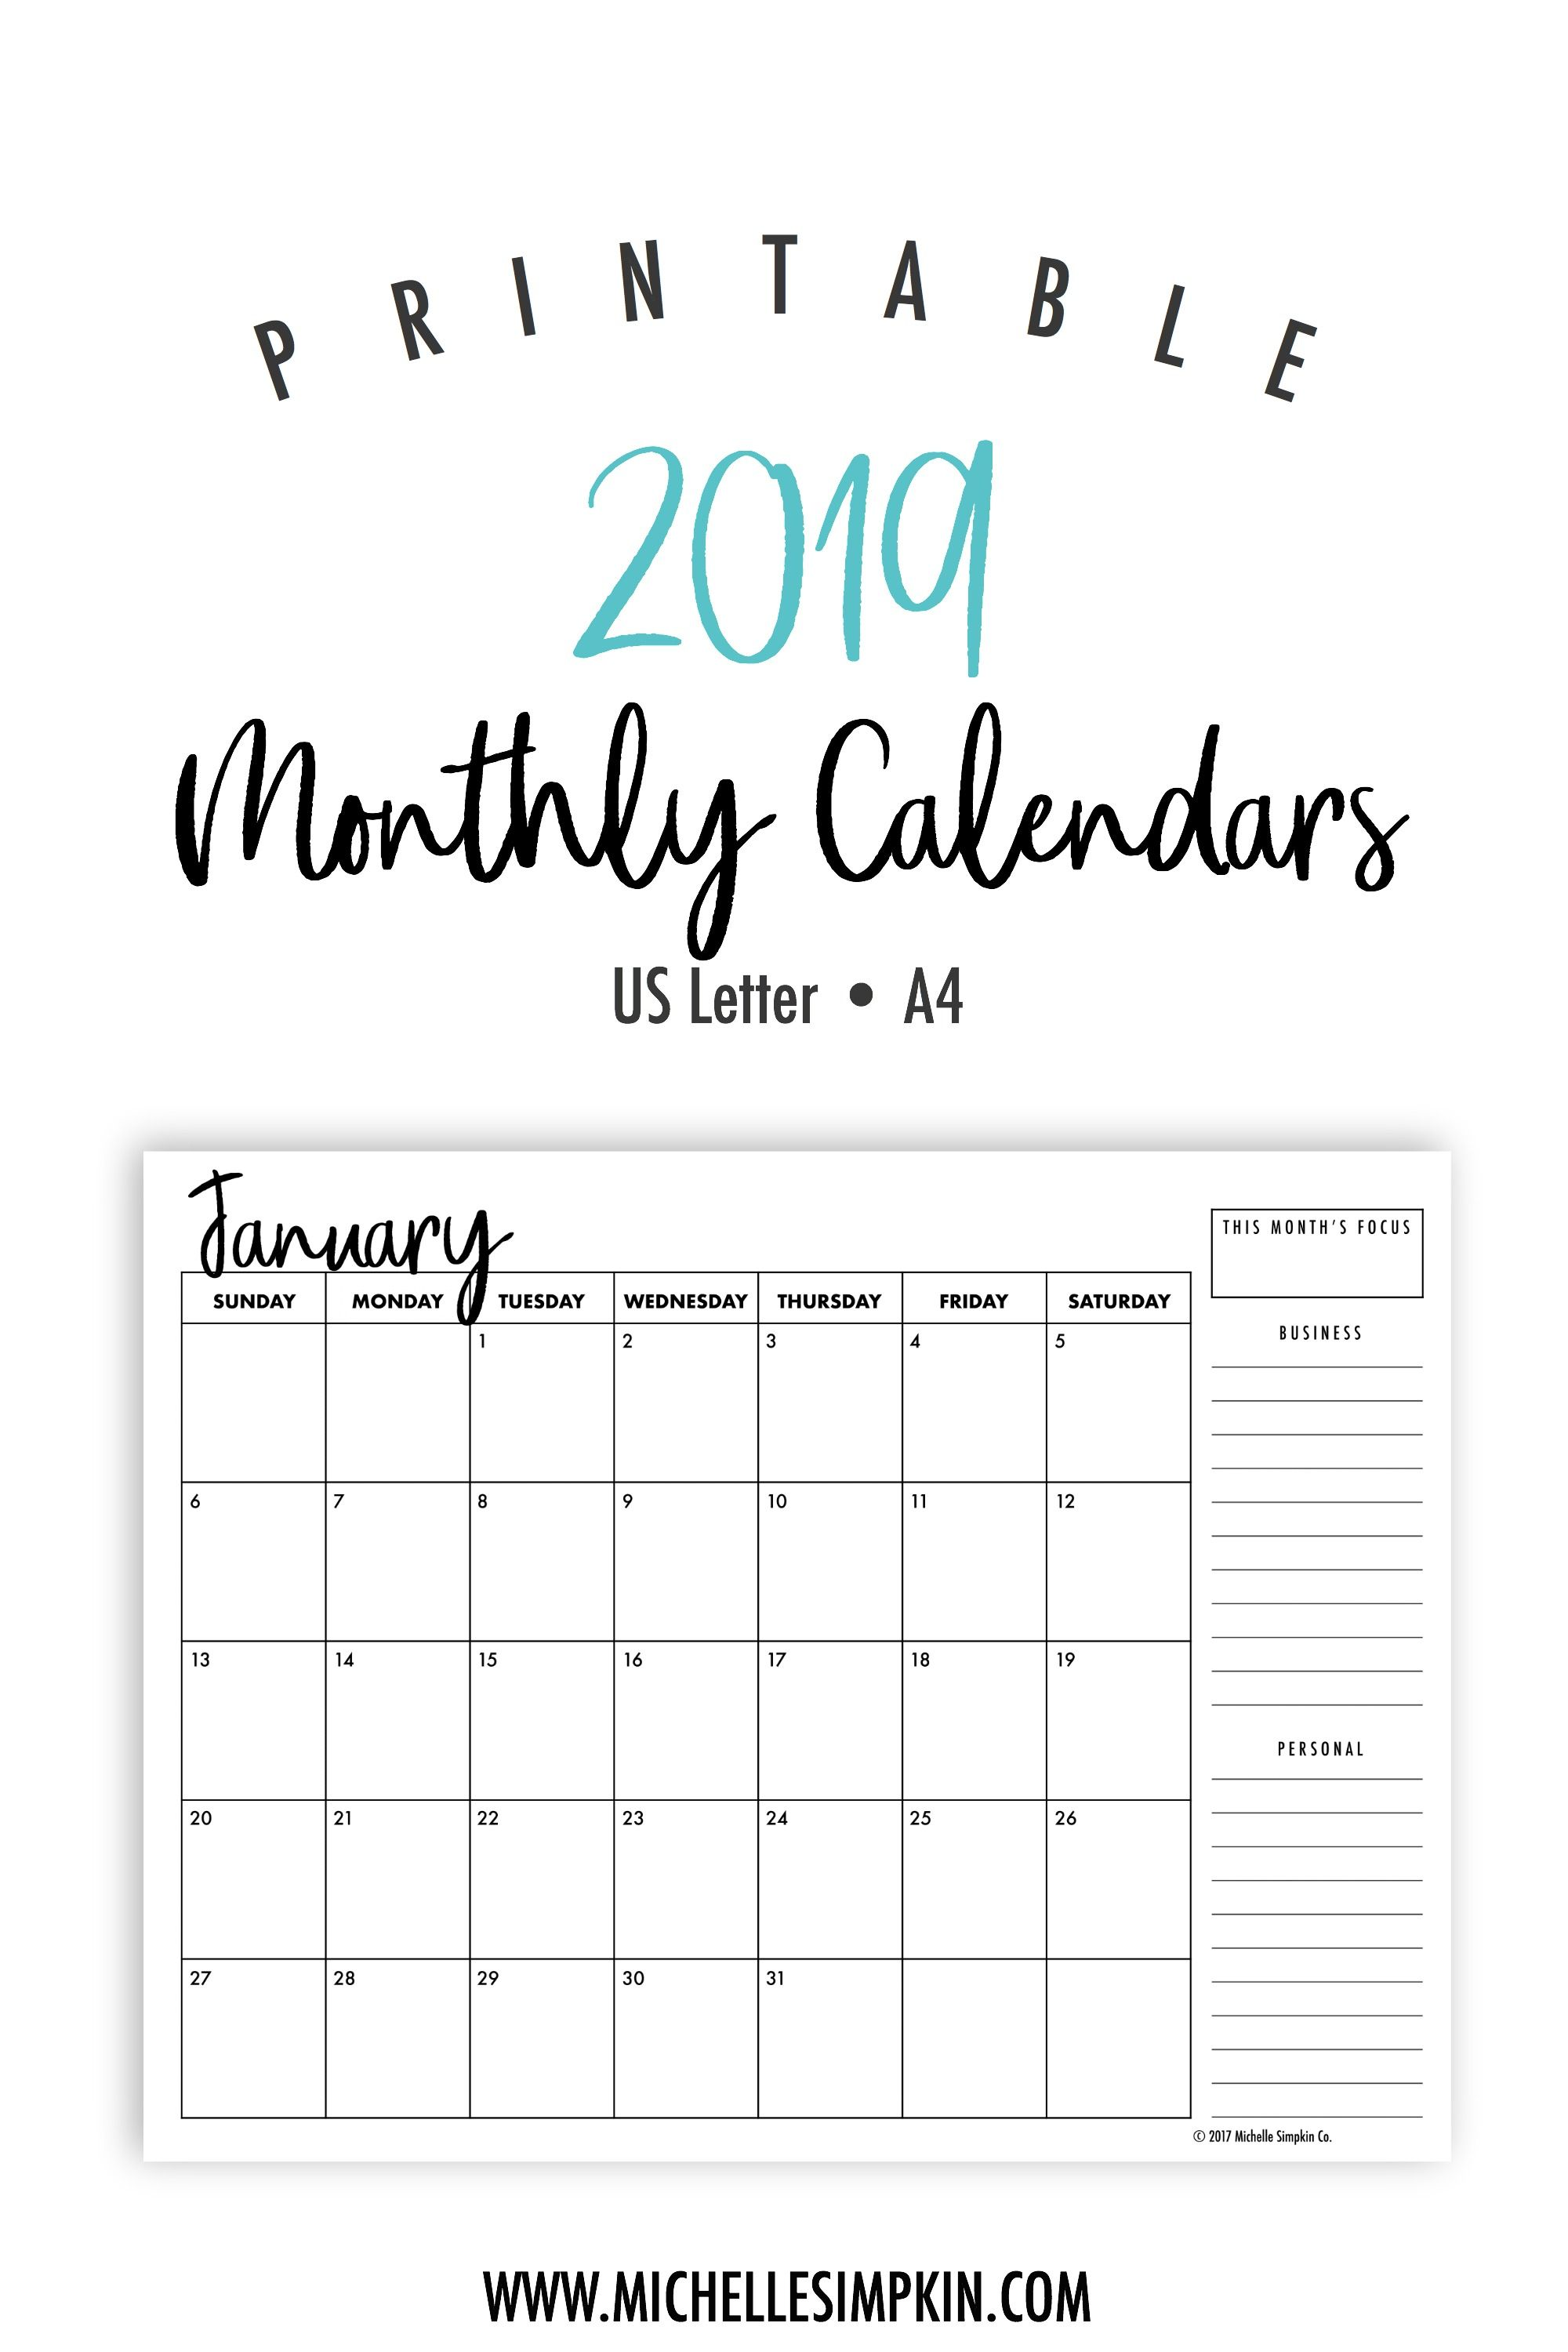 Printable Monthly Calendars 2019 2019 Printable Monthly Calendars • Landscape • US Letter • A4